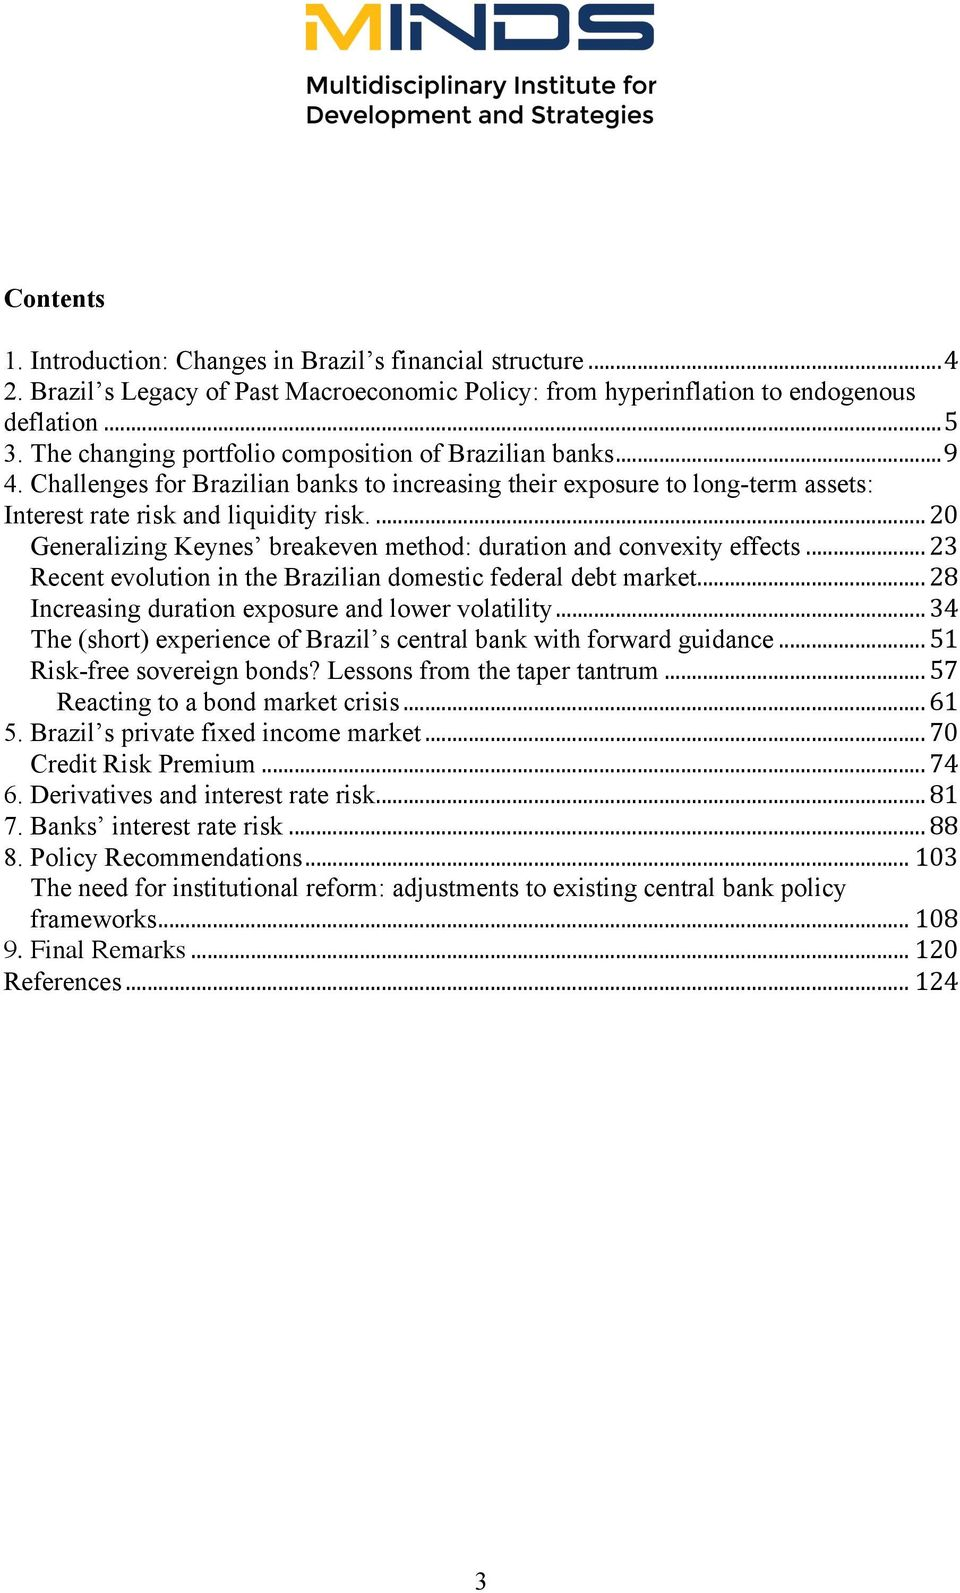 ... 20 Generalizing Keynes breakeven method: duration and convexity effects... 23 Recent evolution in the Brazilian domestic federal debt market... 28 Increasing duration exposure and lower volatility.